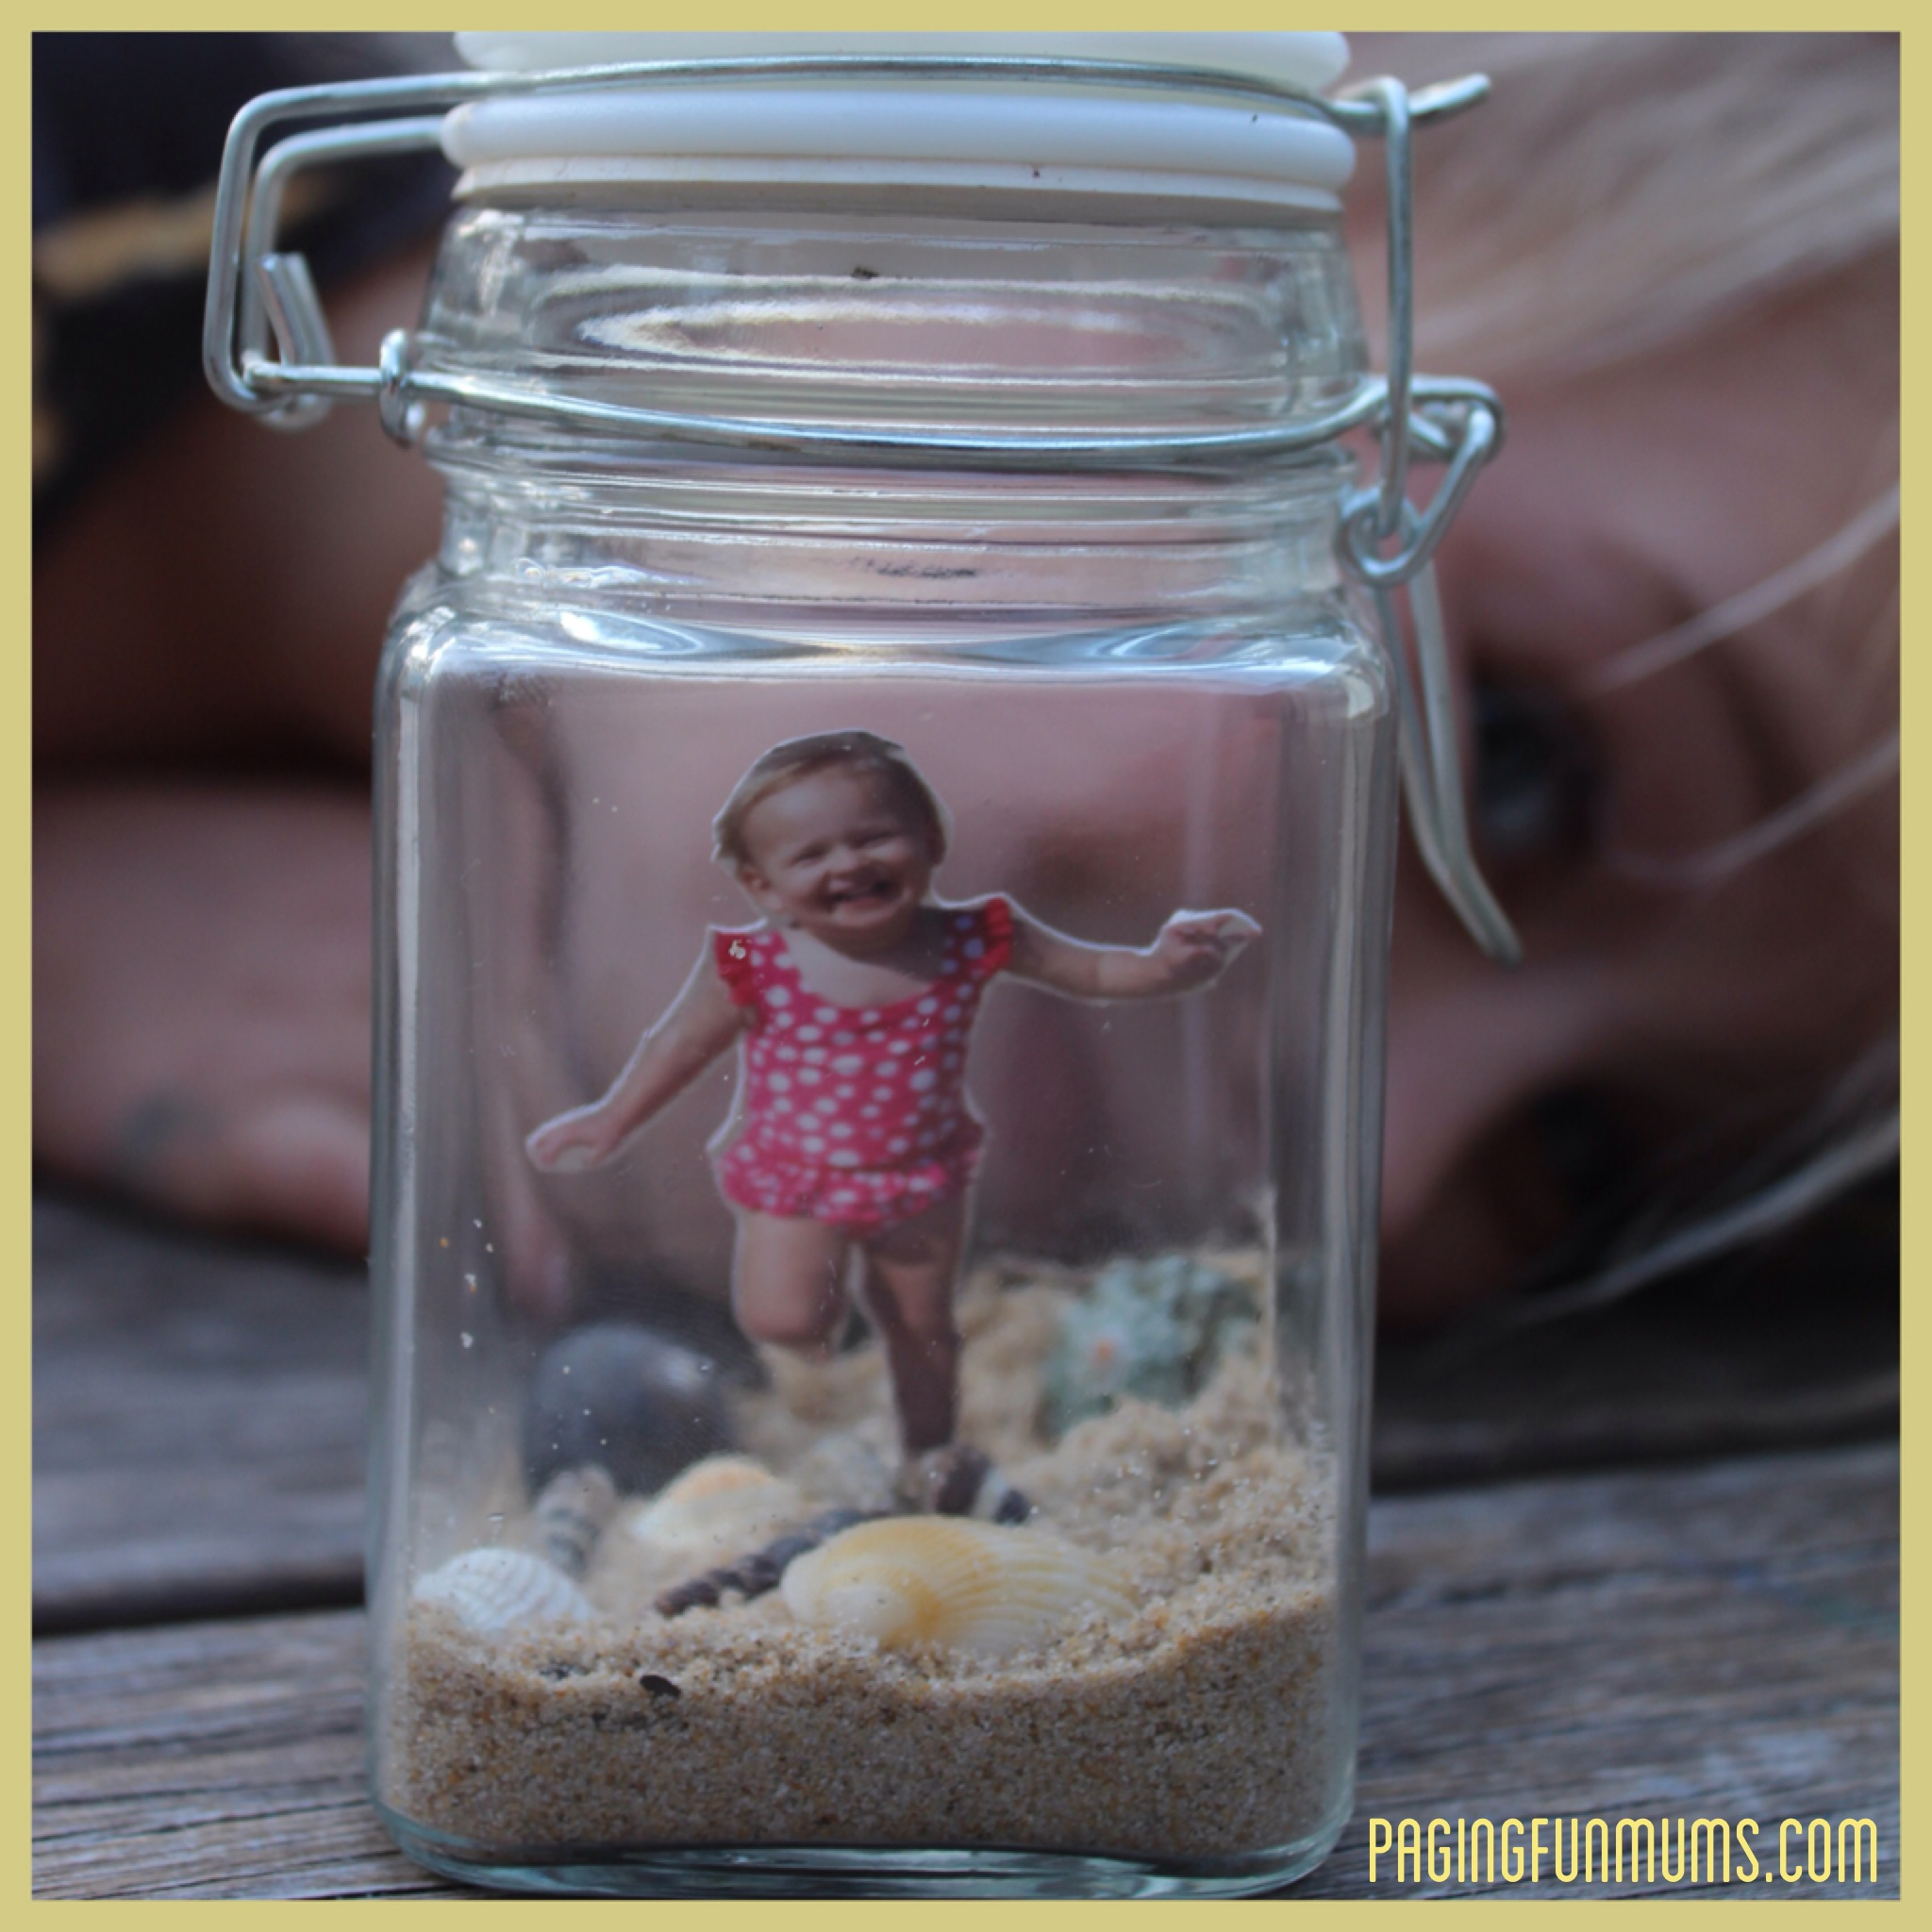 Beach Memory Jar - a special keepsake filled with happy memories and little treasures.